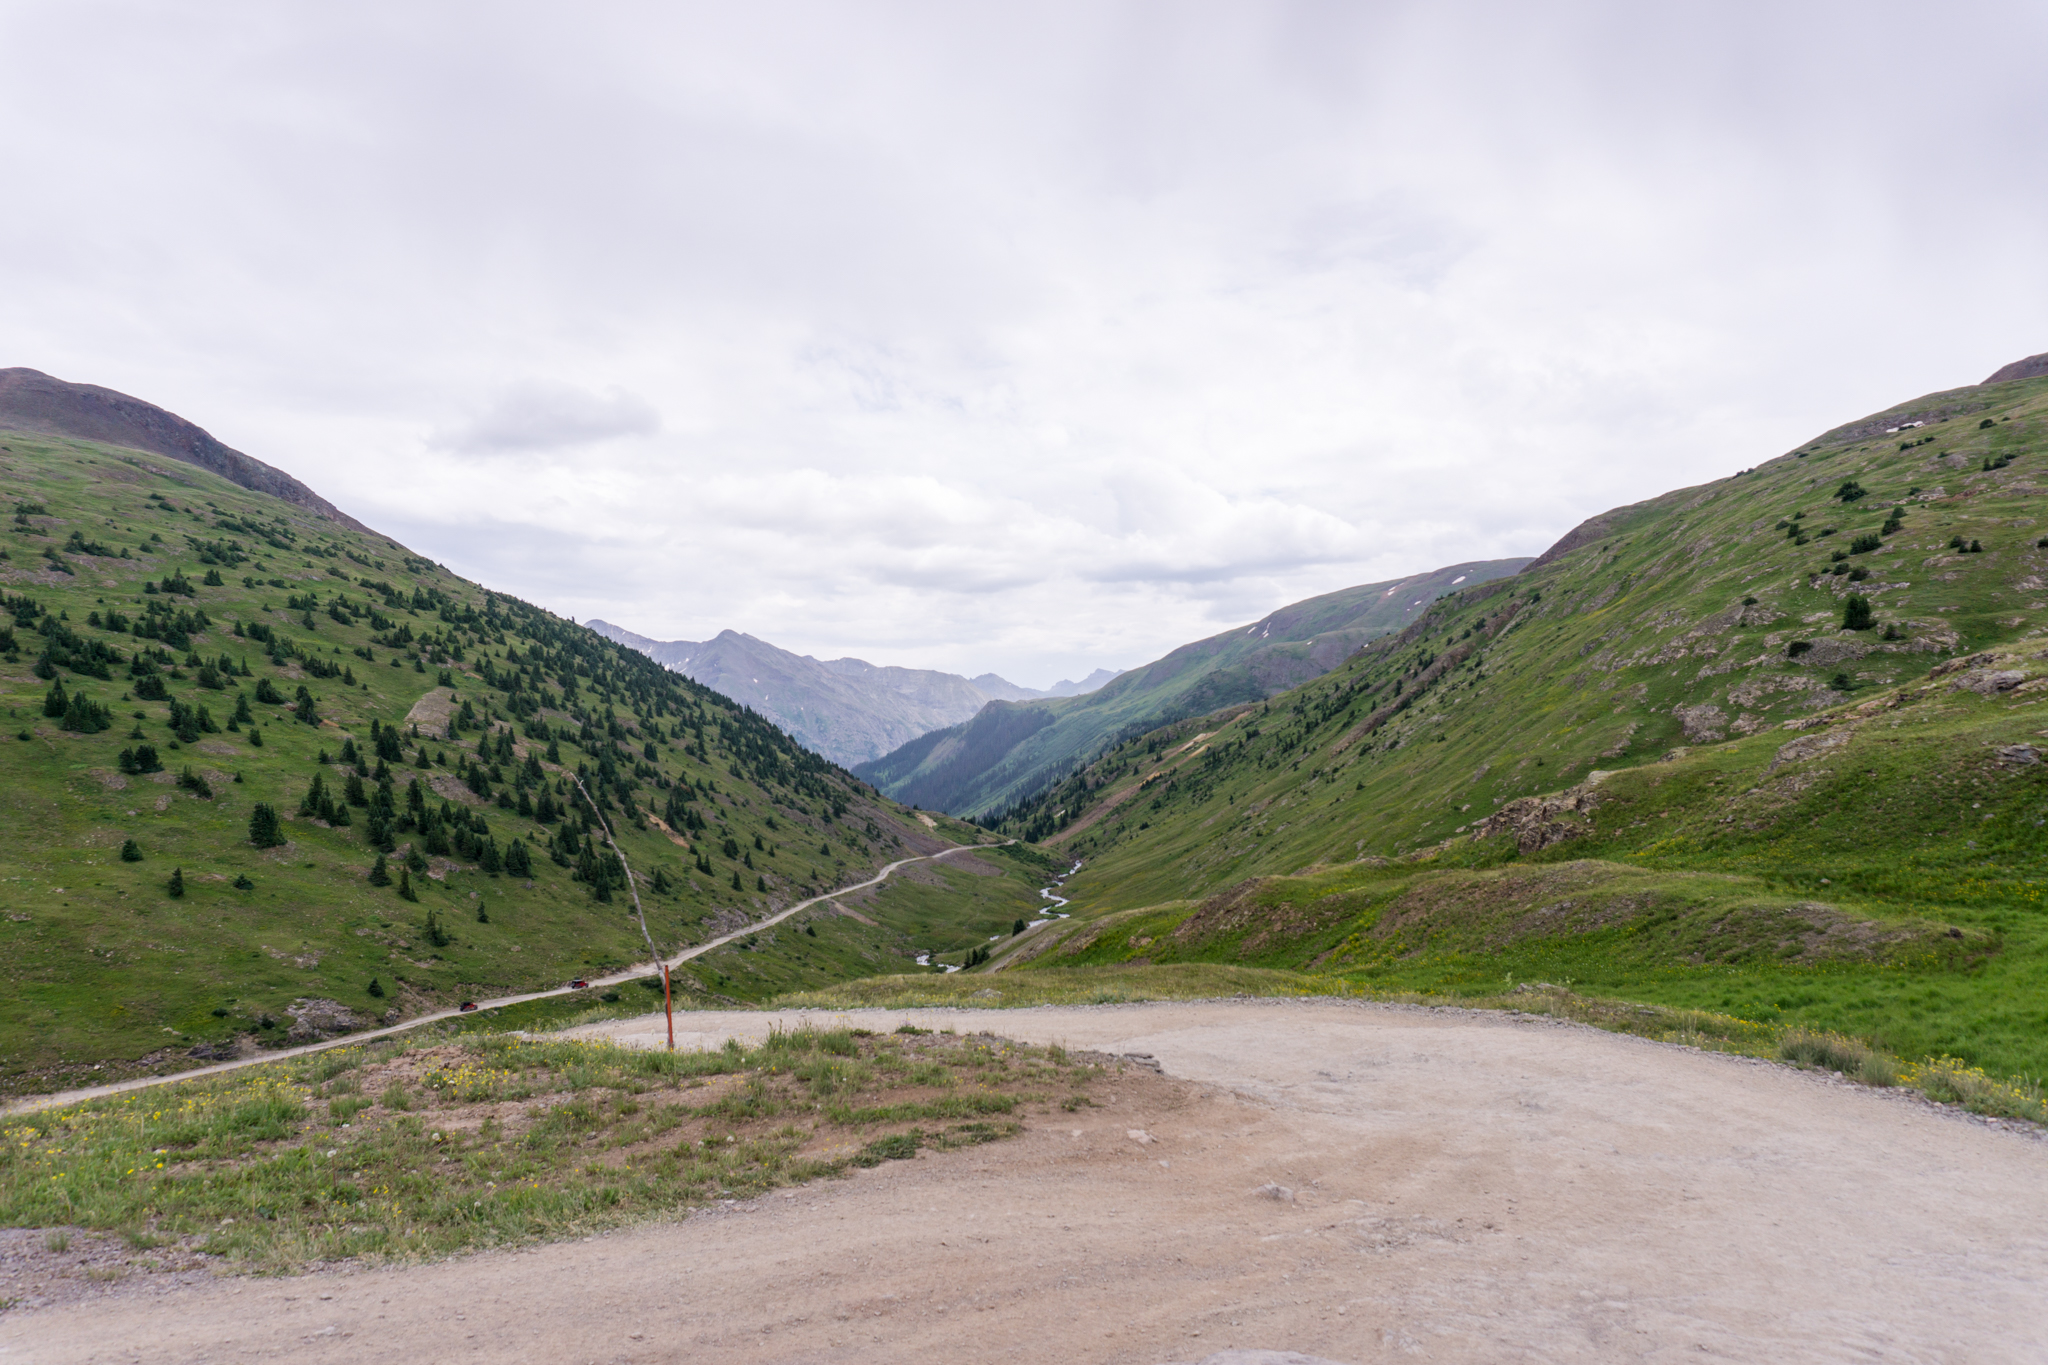 One of many hairpins.